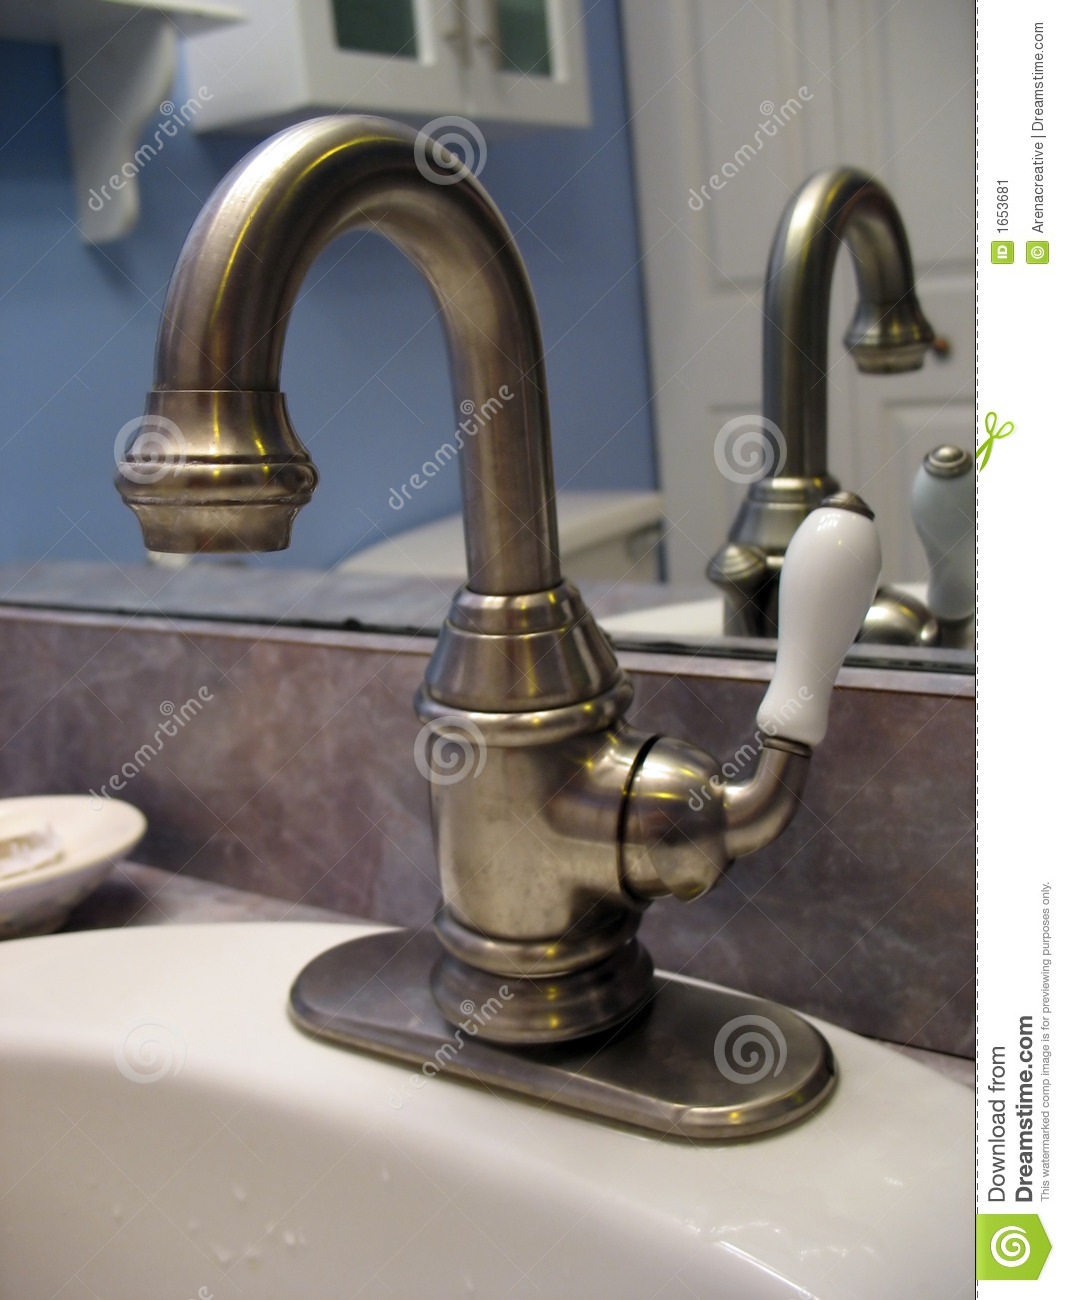 Brushed Nickel Faucet Stock Image Image Of Ceramic Home 1653681